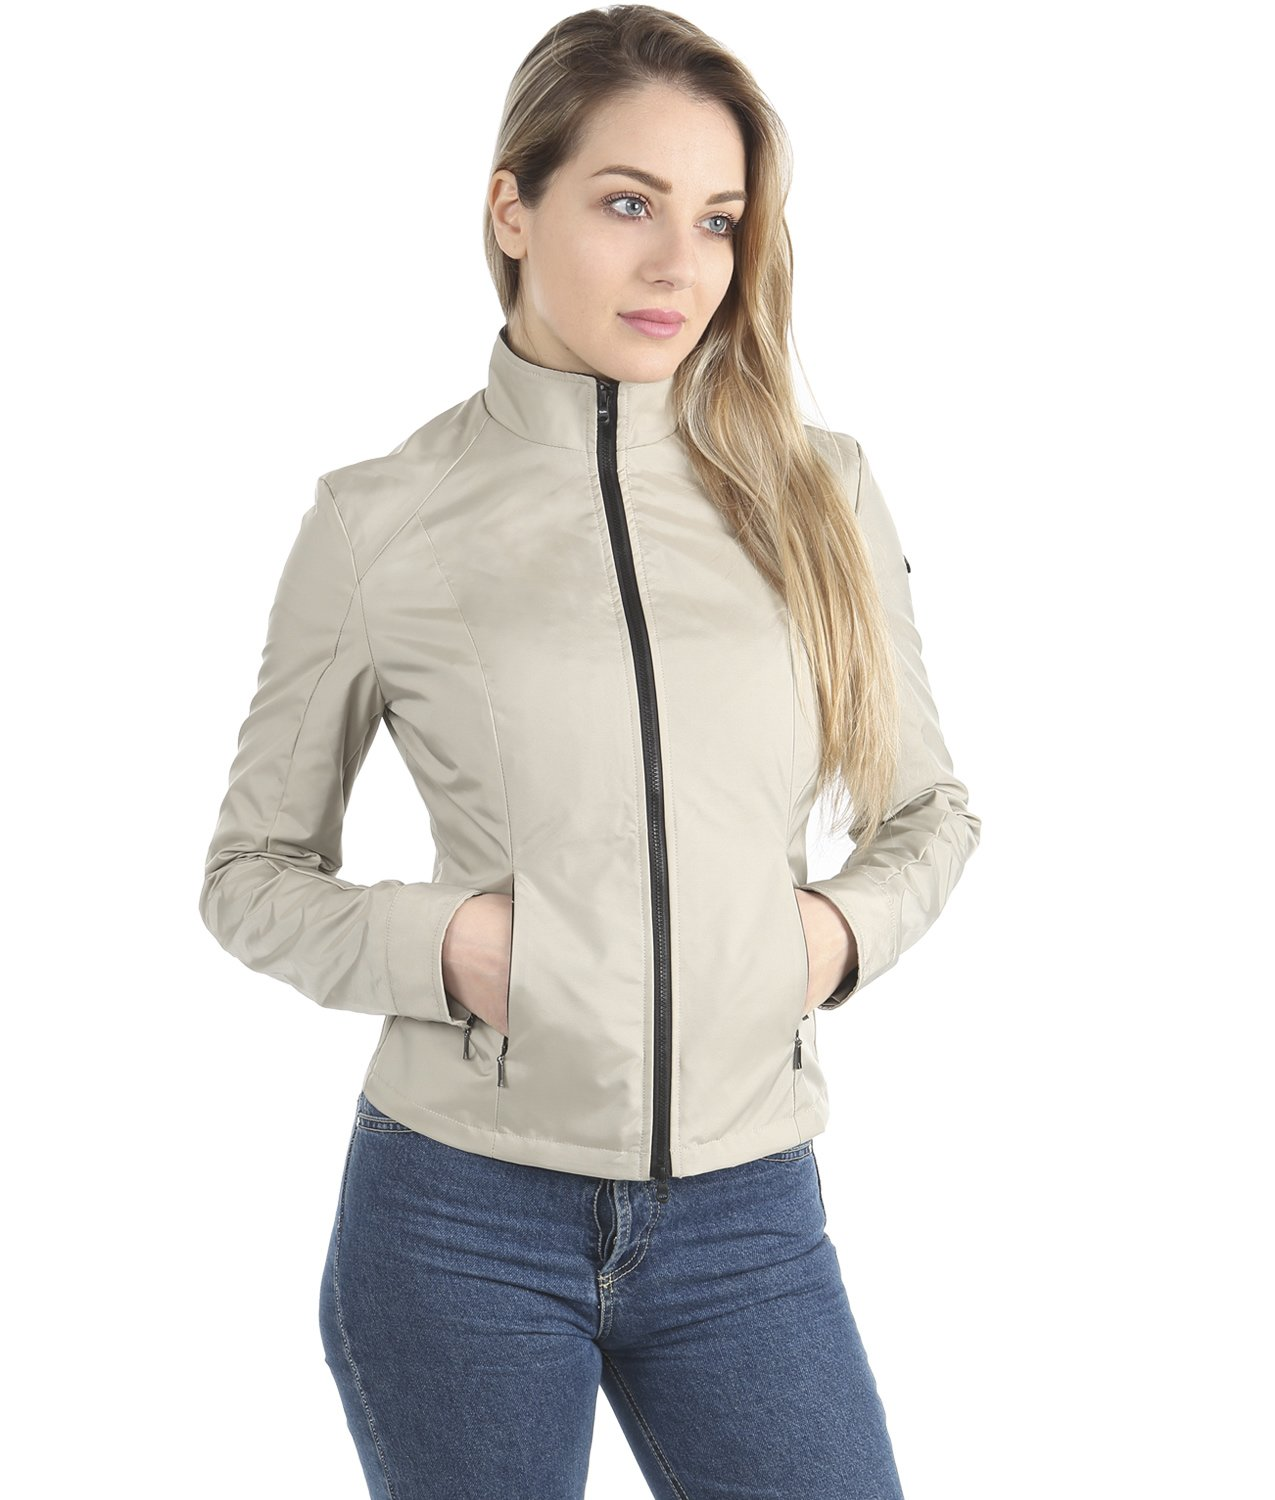 HEATHER JACKET